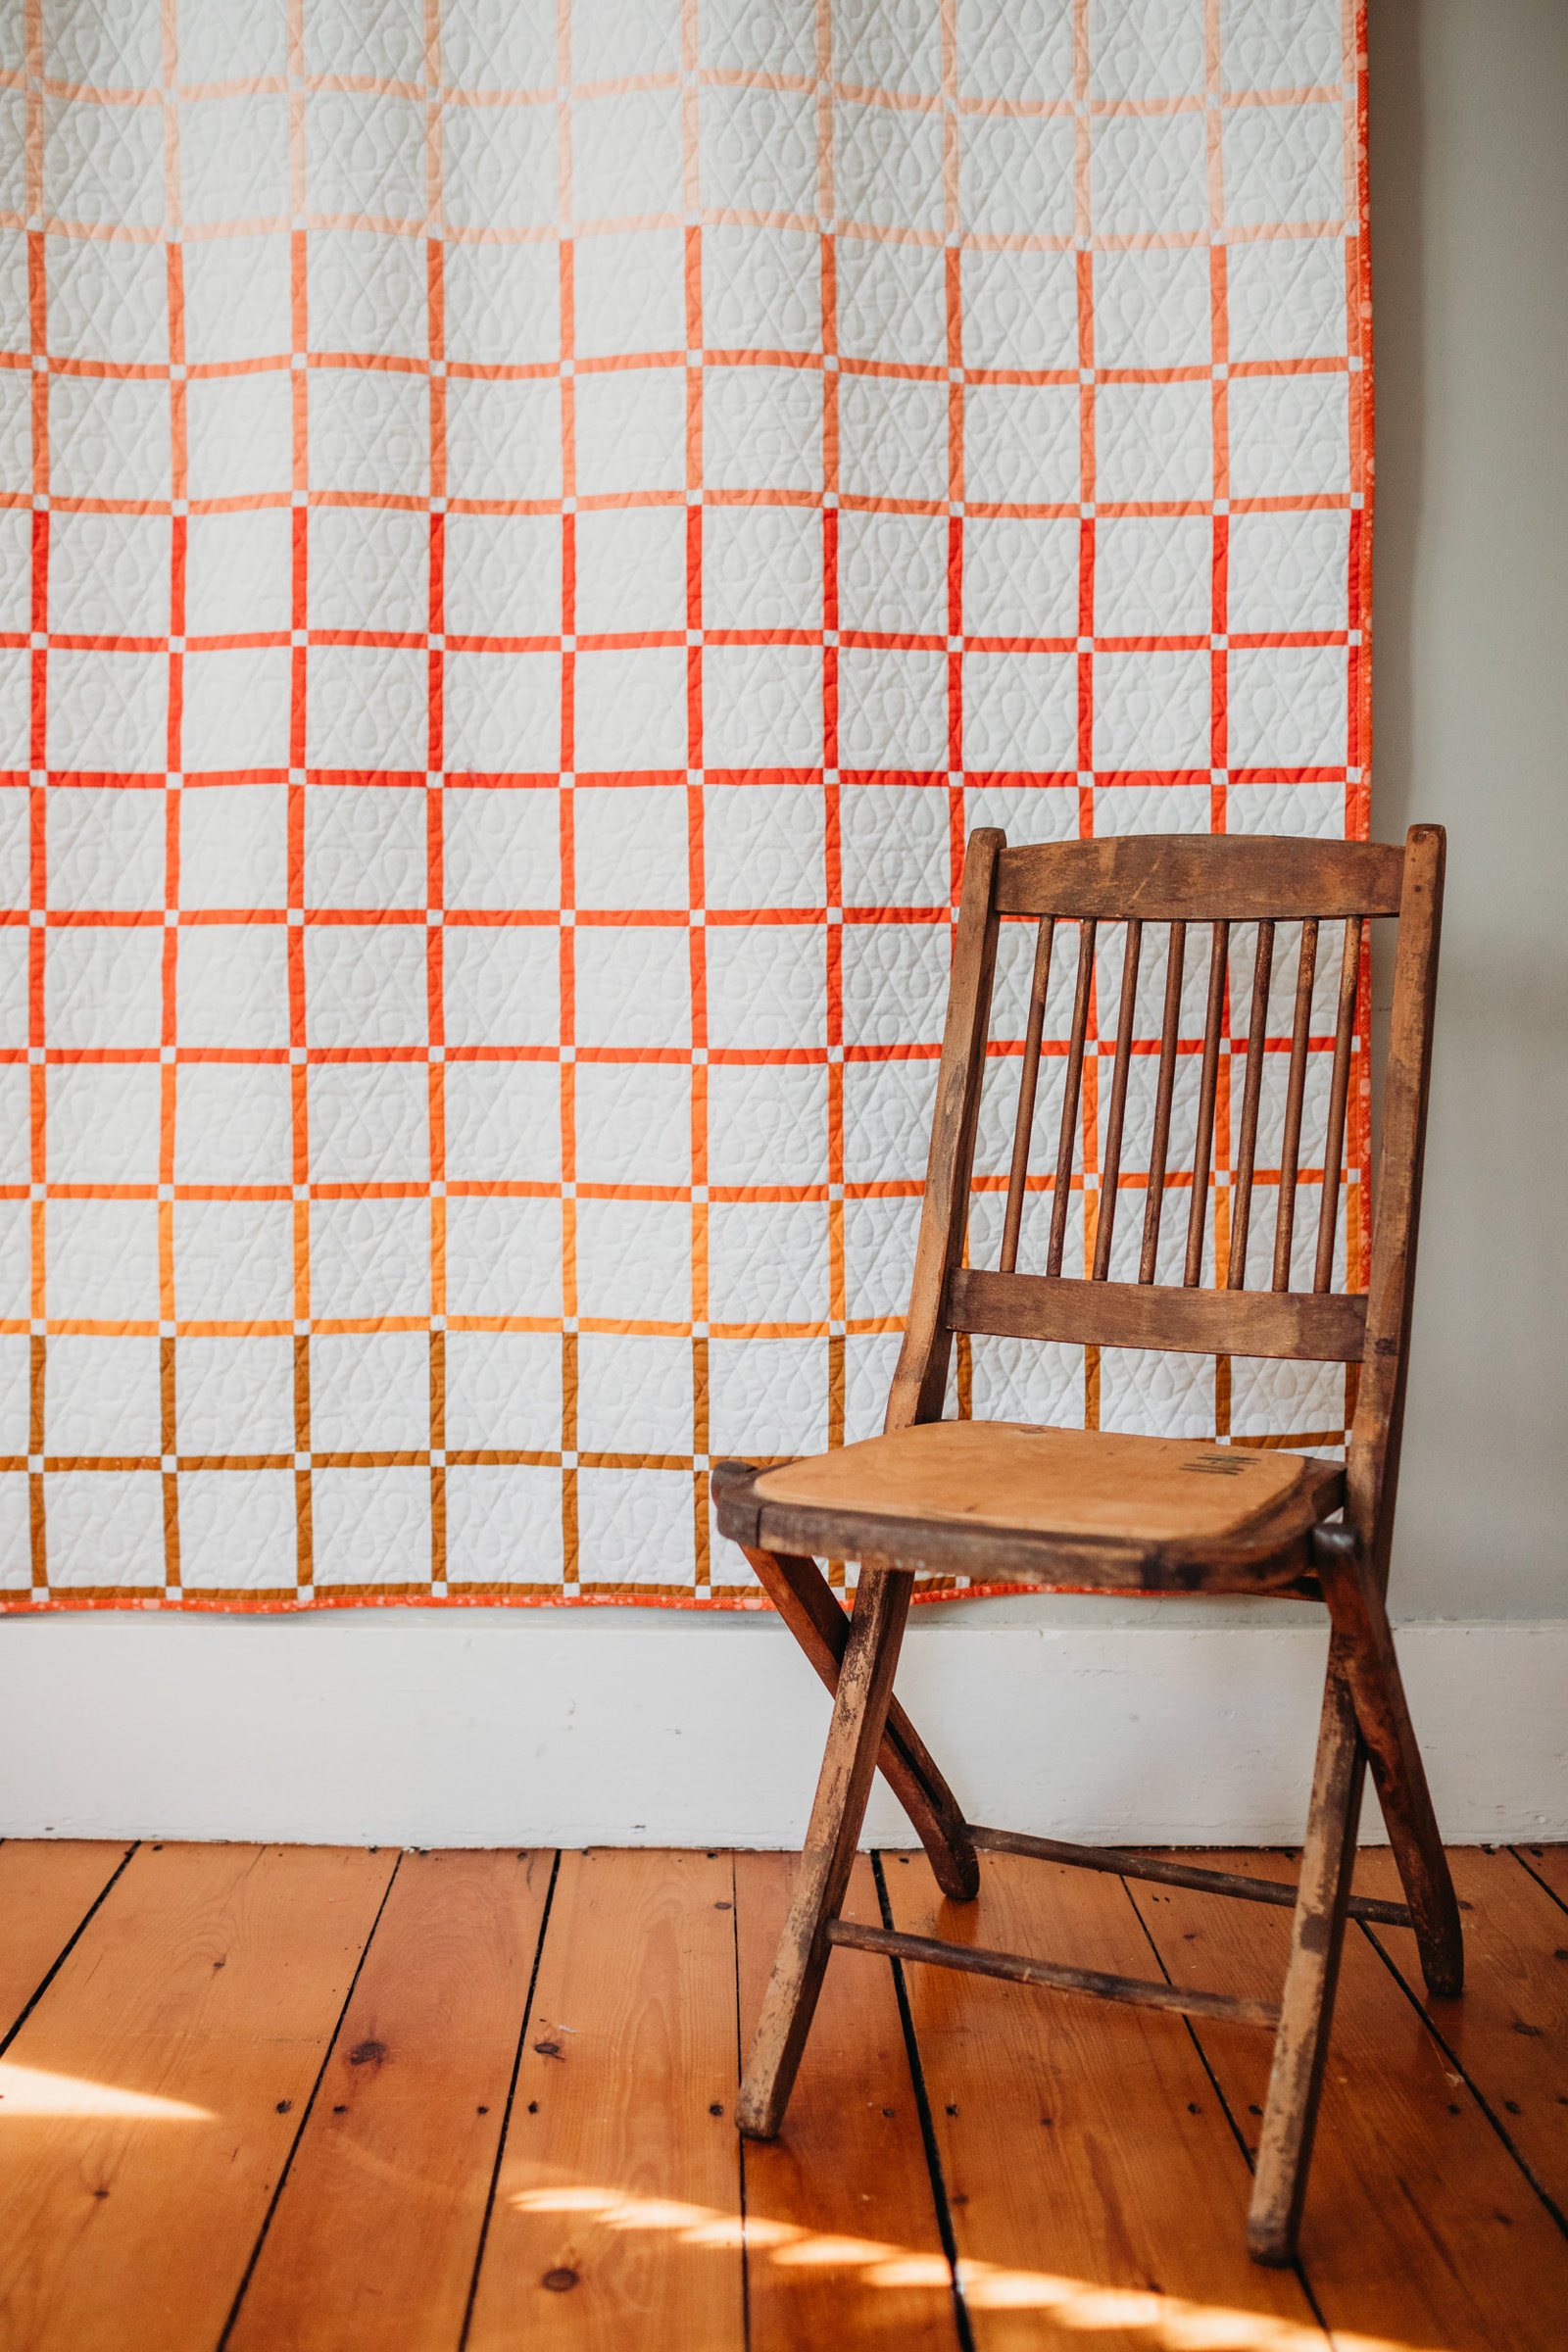 wooden antique chair in front of hanging pink square quilt